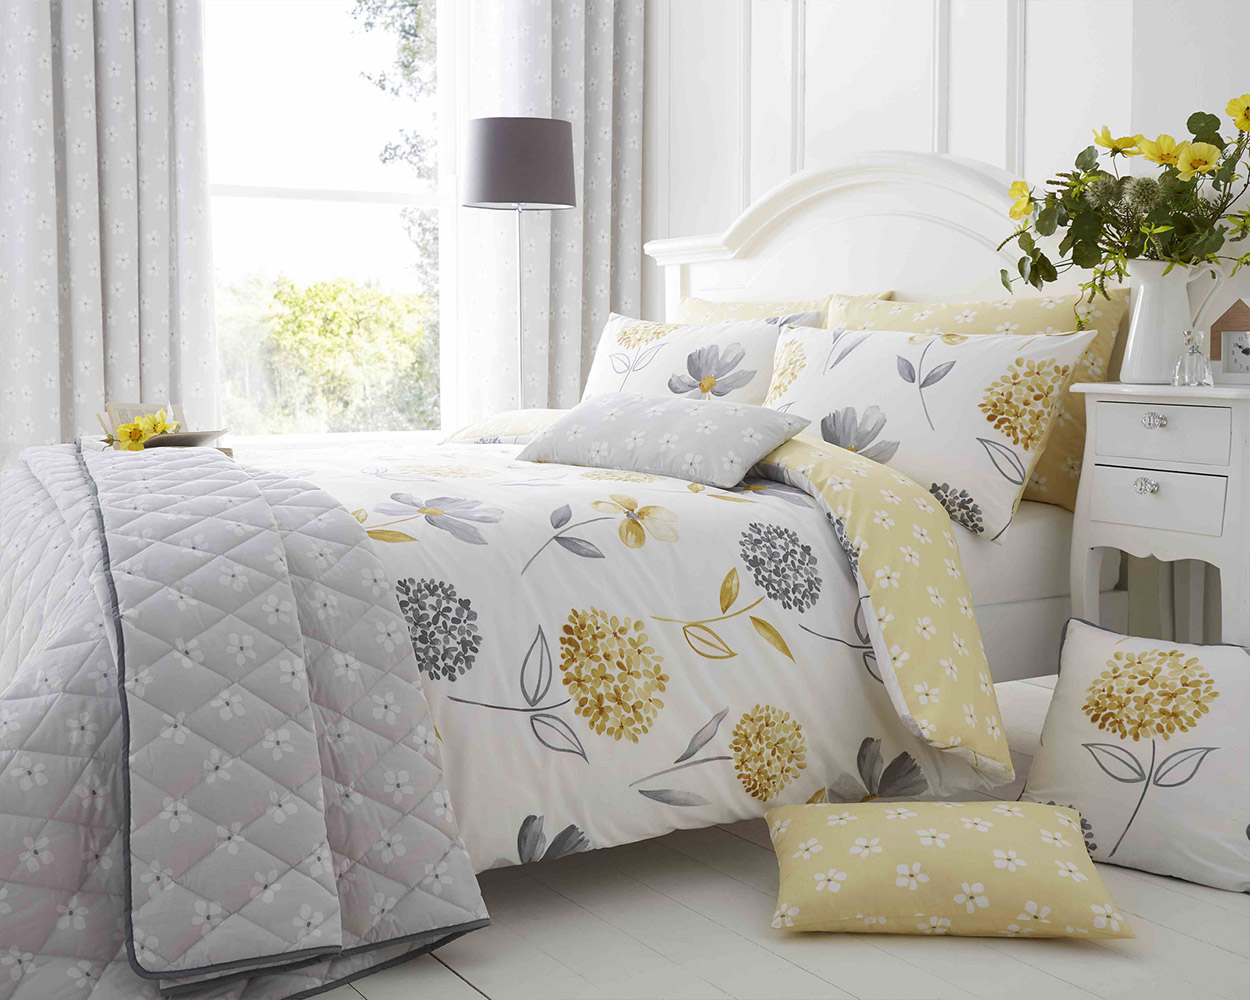 New Duvet Cover Set With Pillow Case Bedding Quilt Sophia